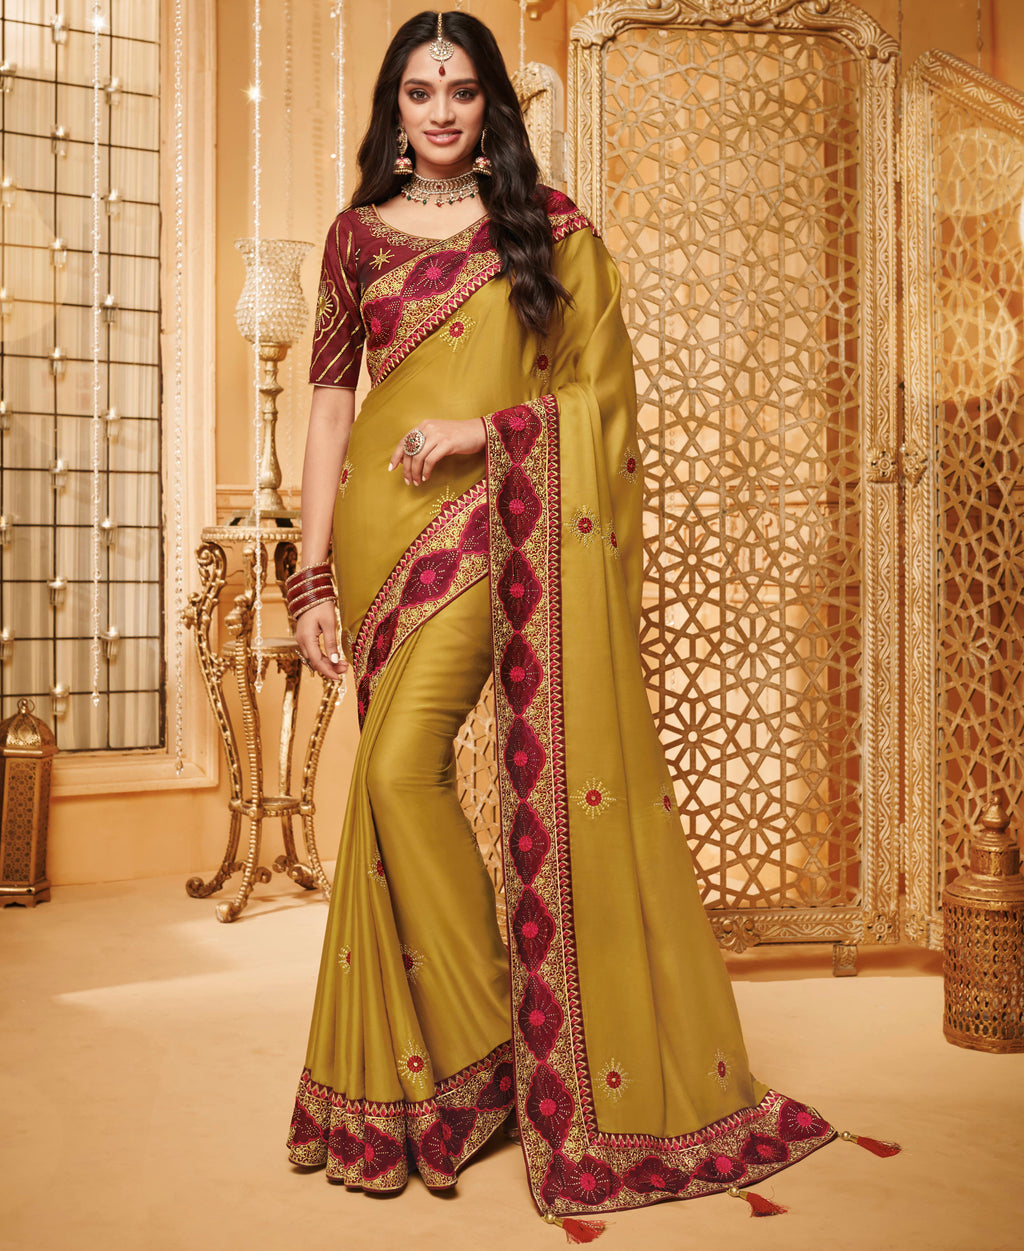 Mustard Yellow Color Silk Beautiful Occasion Wear Sarees NYF-4190 - YellowFashion.in